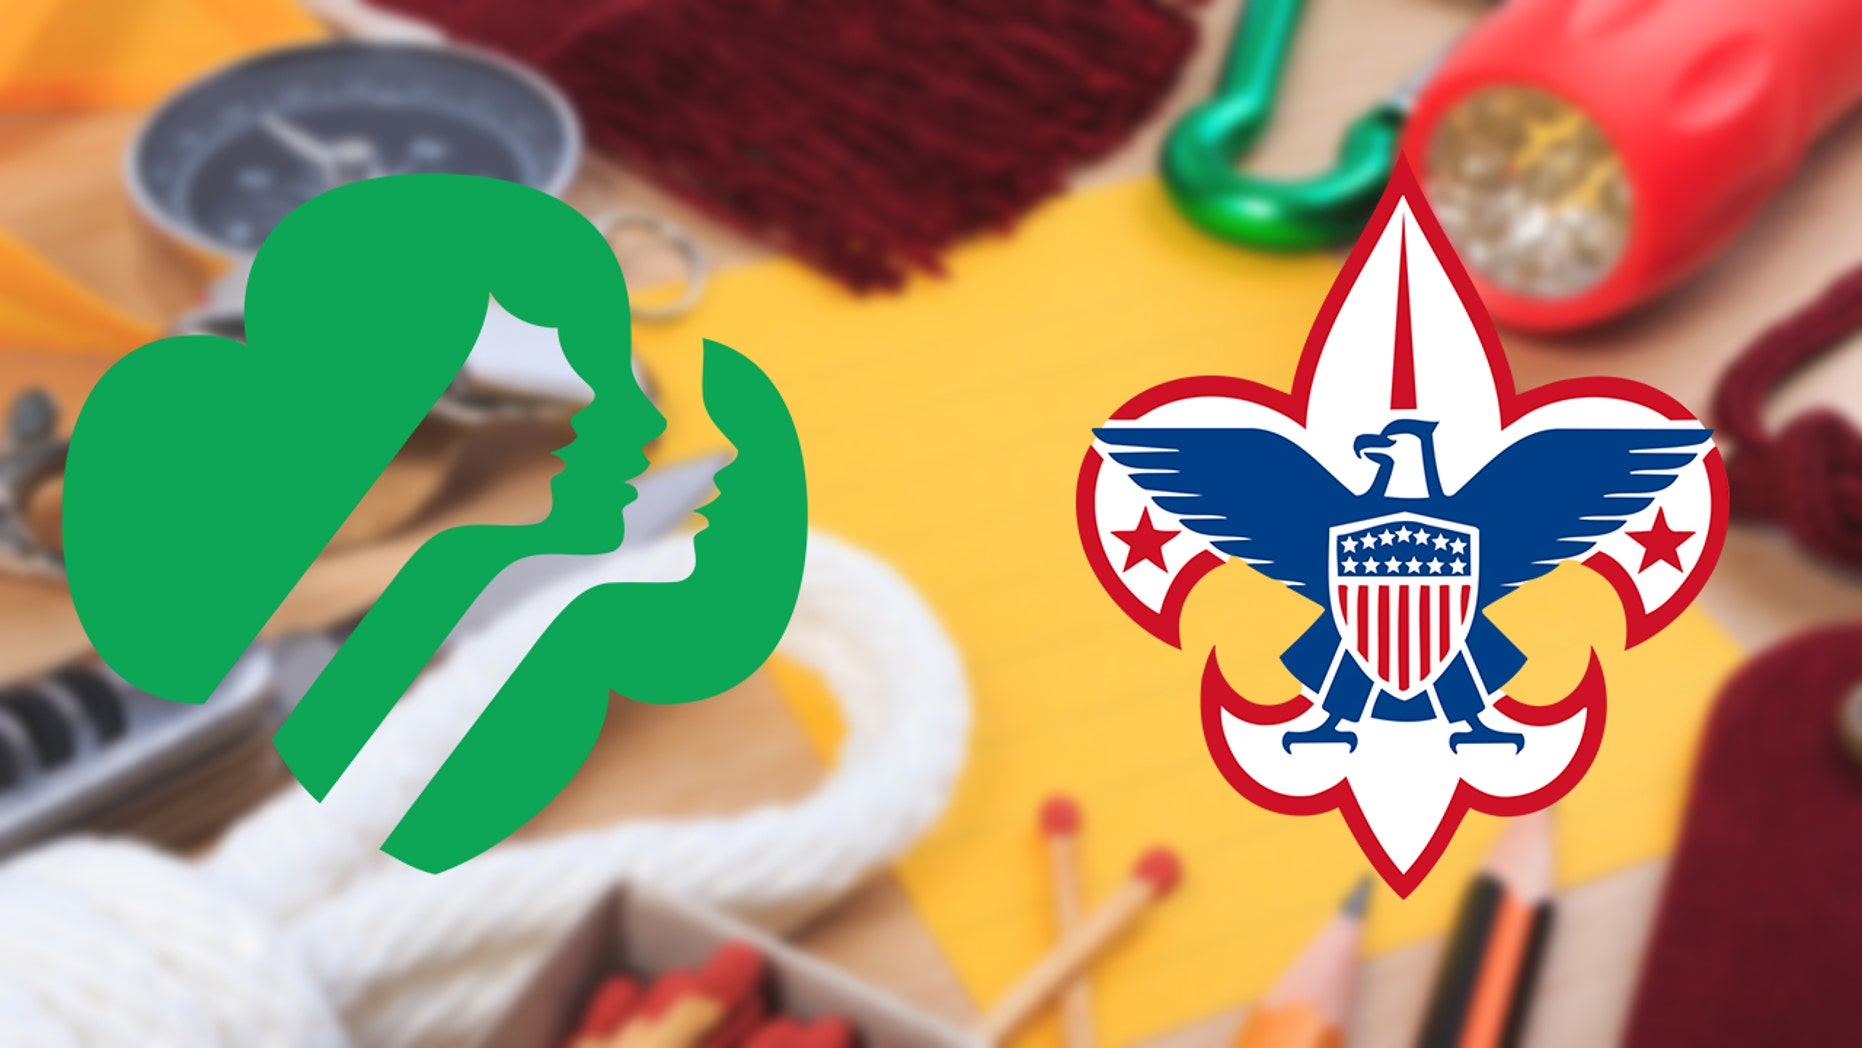 Girl Scouts Lawsuit Accuses Boy Scouts Of Trademark Infringement